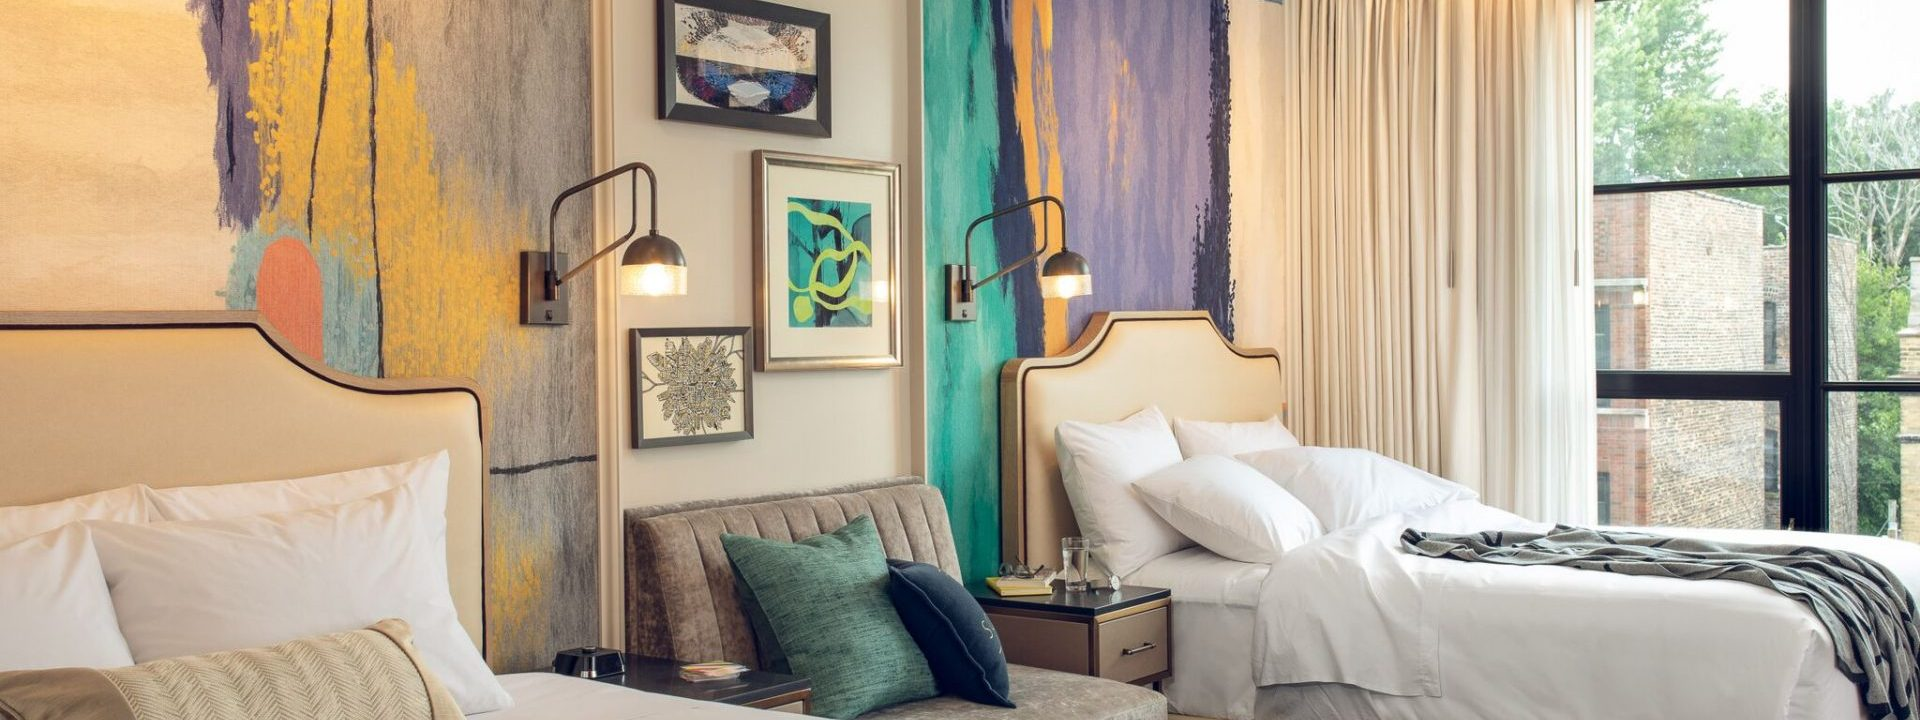 Sophy Hyde Park opens its doors in the Windy City